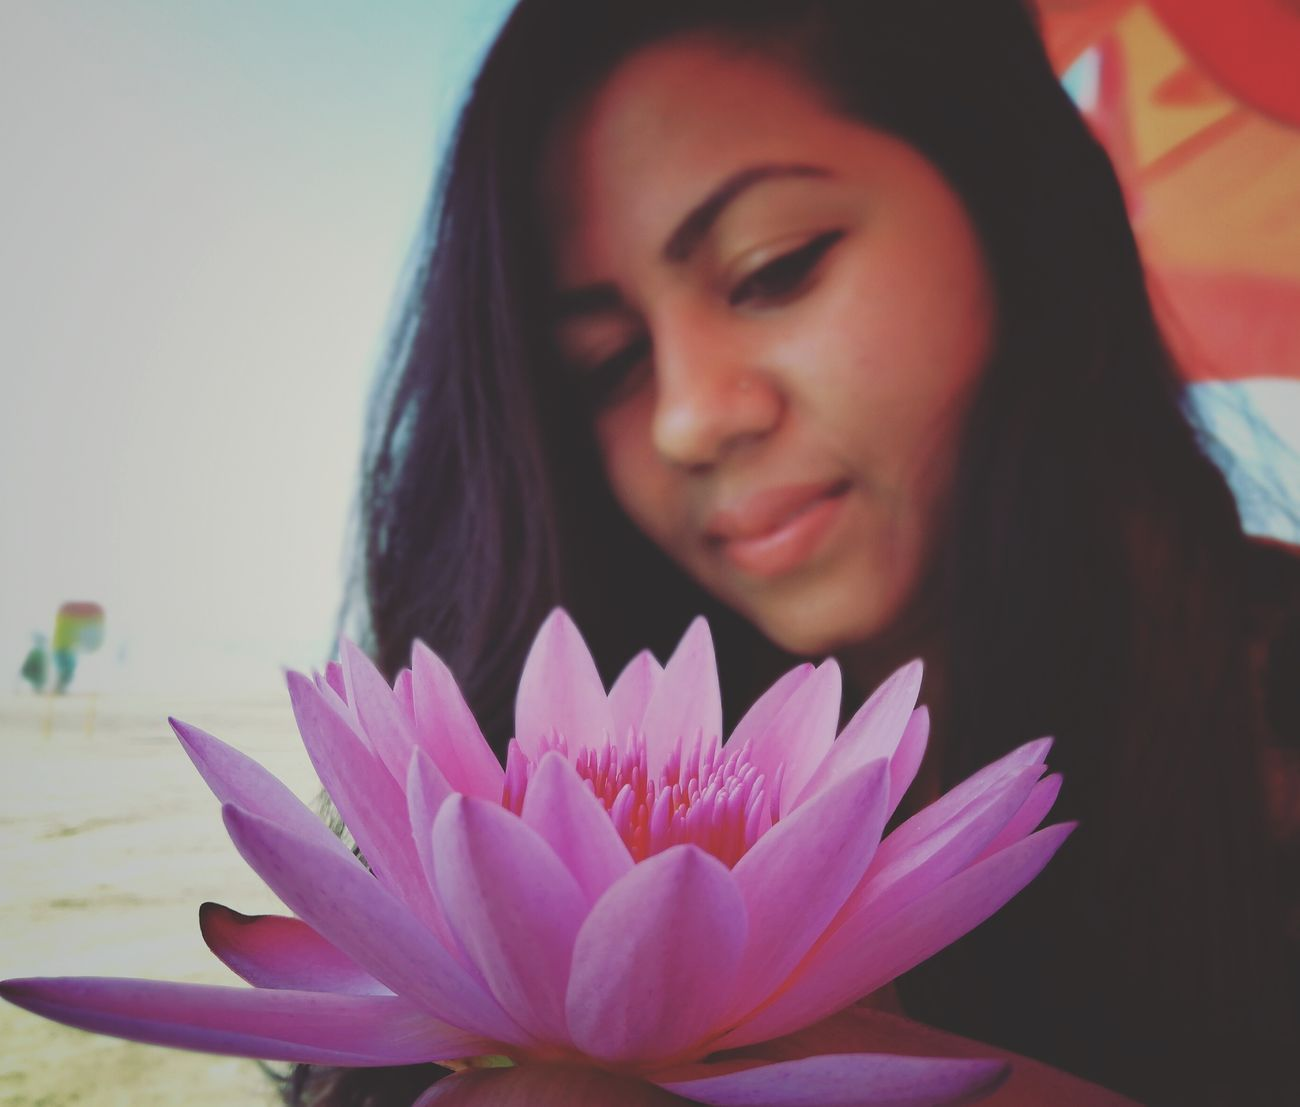 Beauty with flower